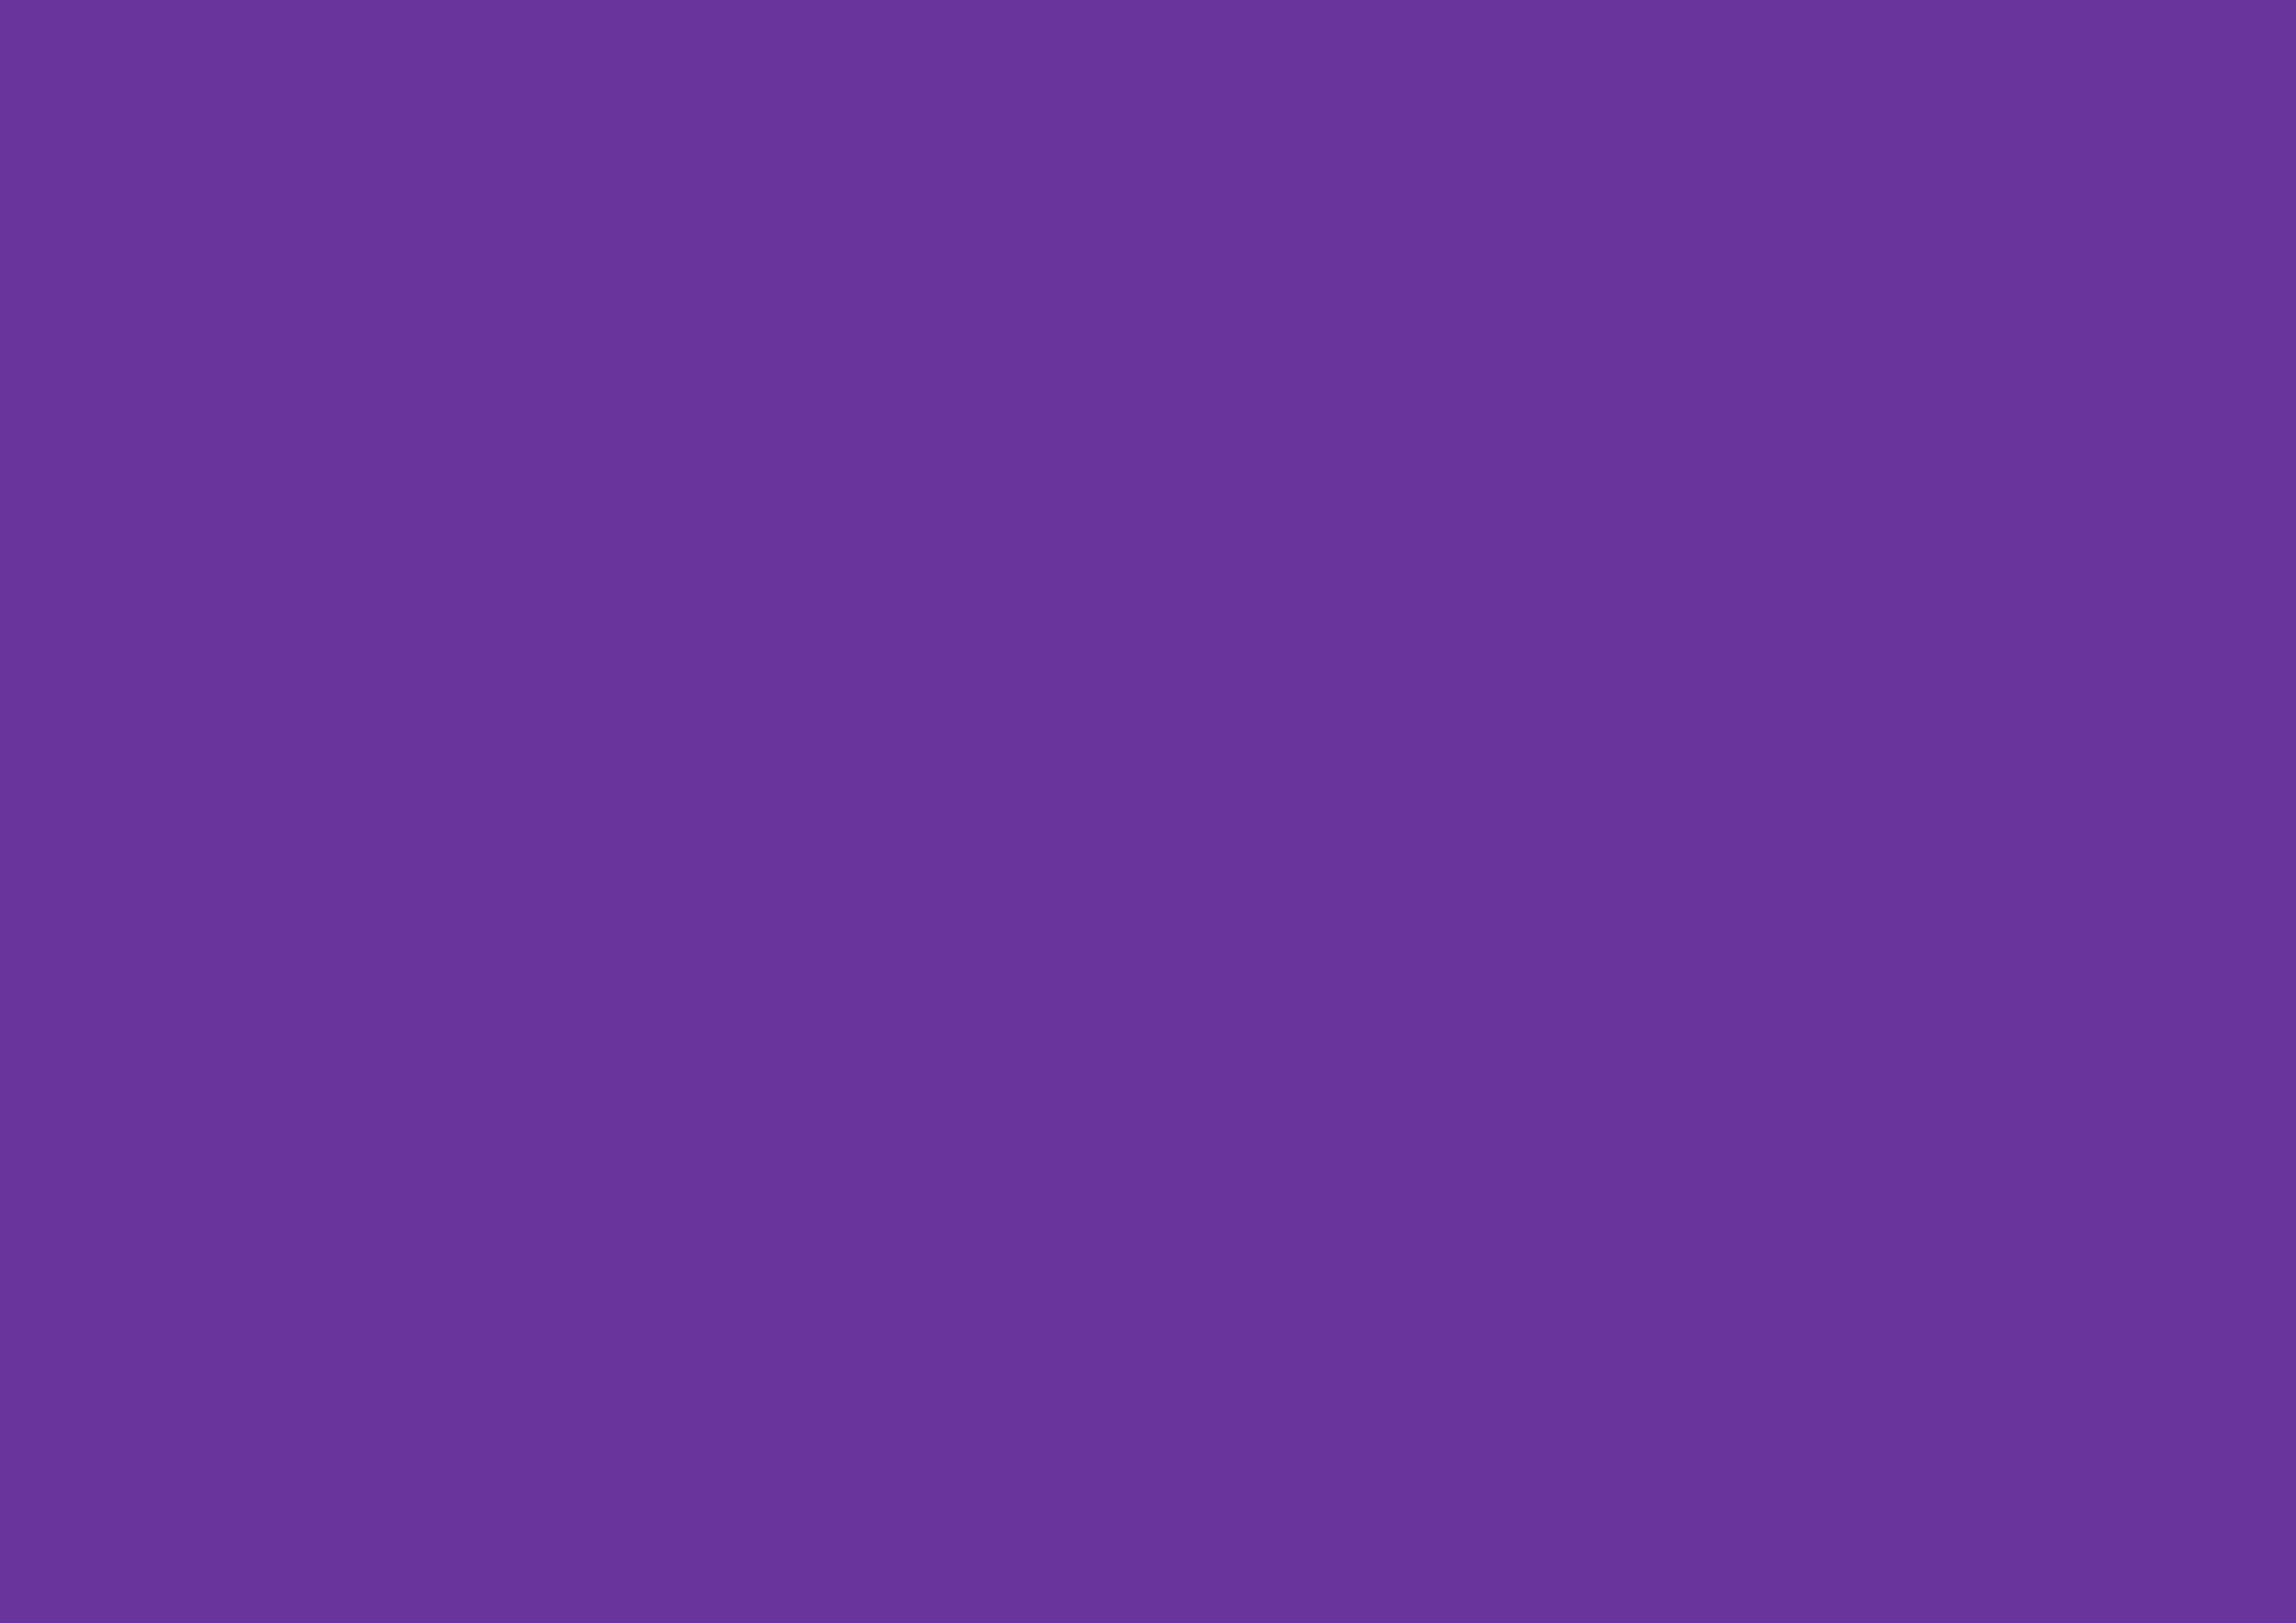 3508x2480 Purple Heart Solid Color Background